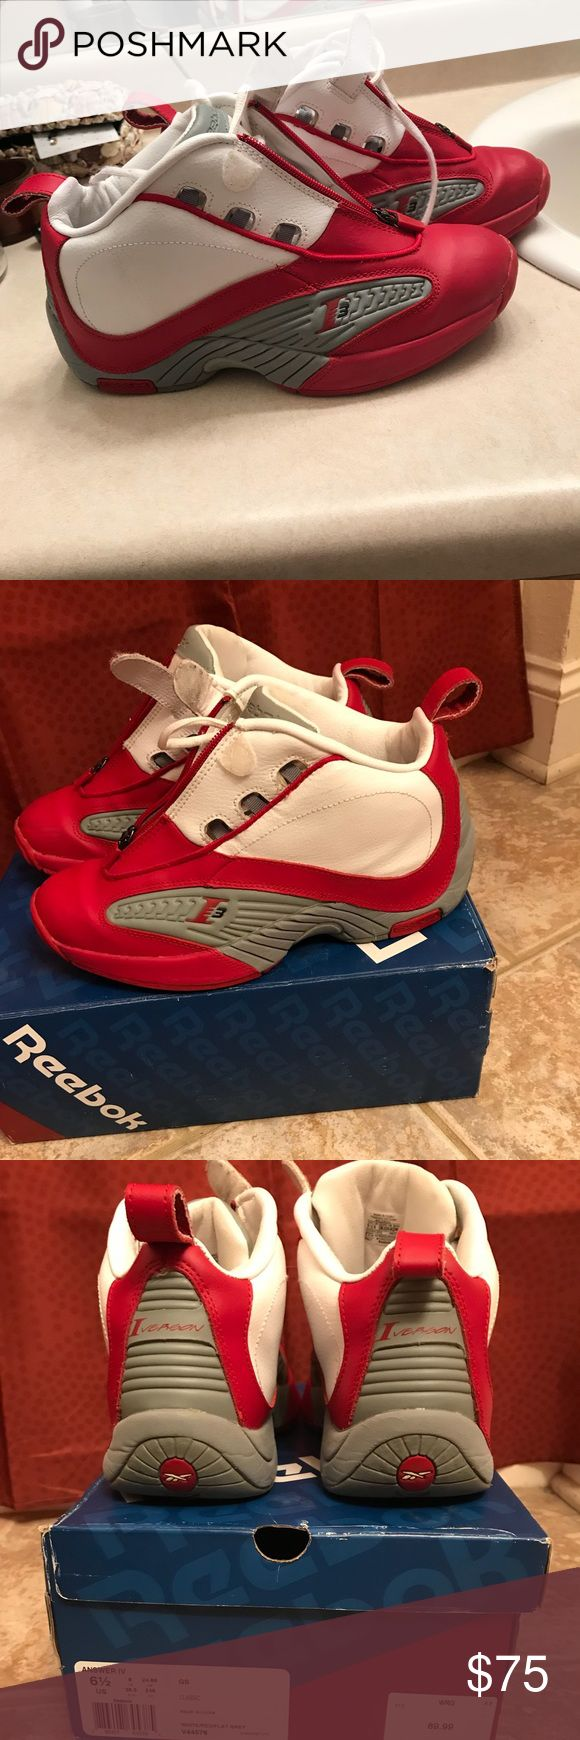 Allen Iverson Answer IV Size 6.5 in Kids 8-8.5 in Women  Offers accepted! Reebok Shoes Athletic Shoes